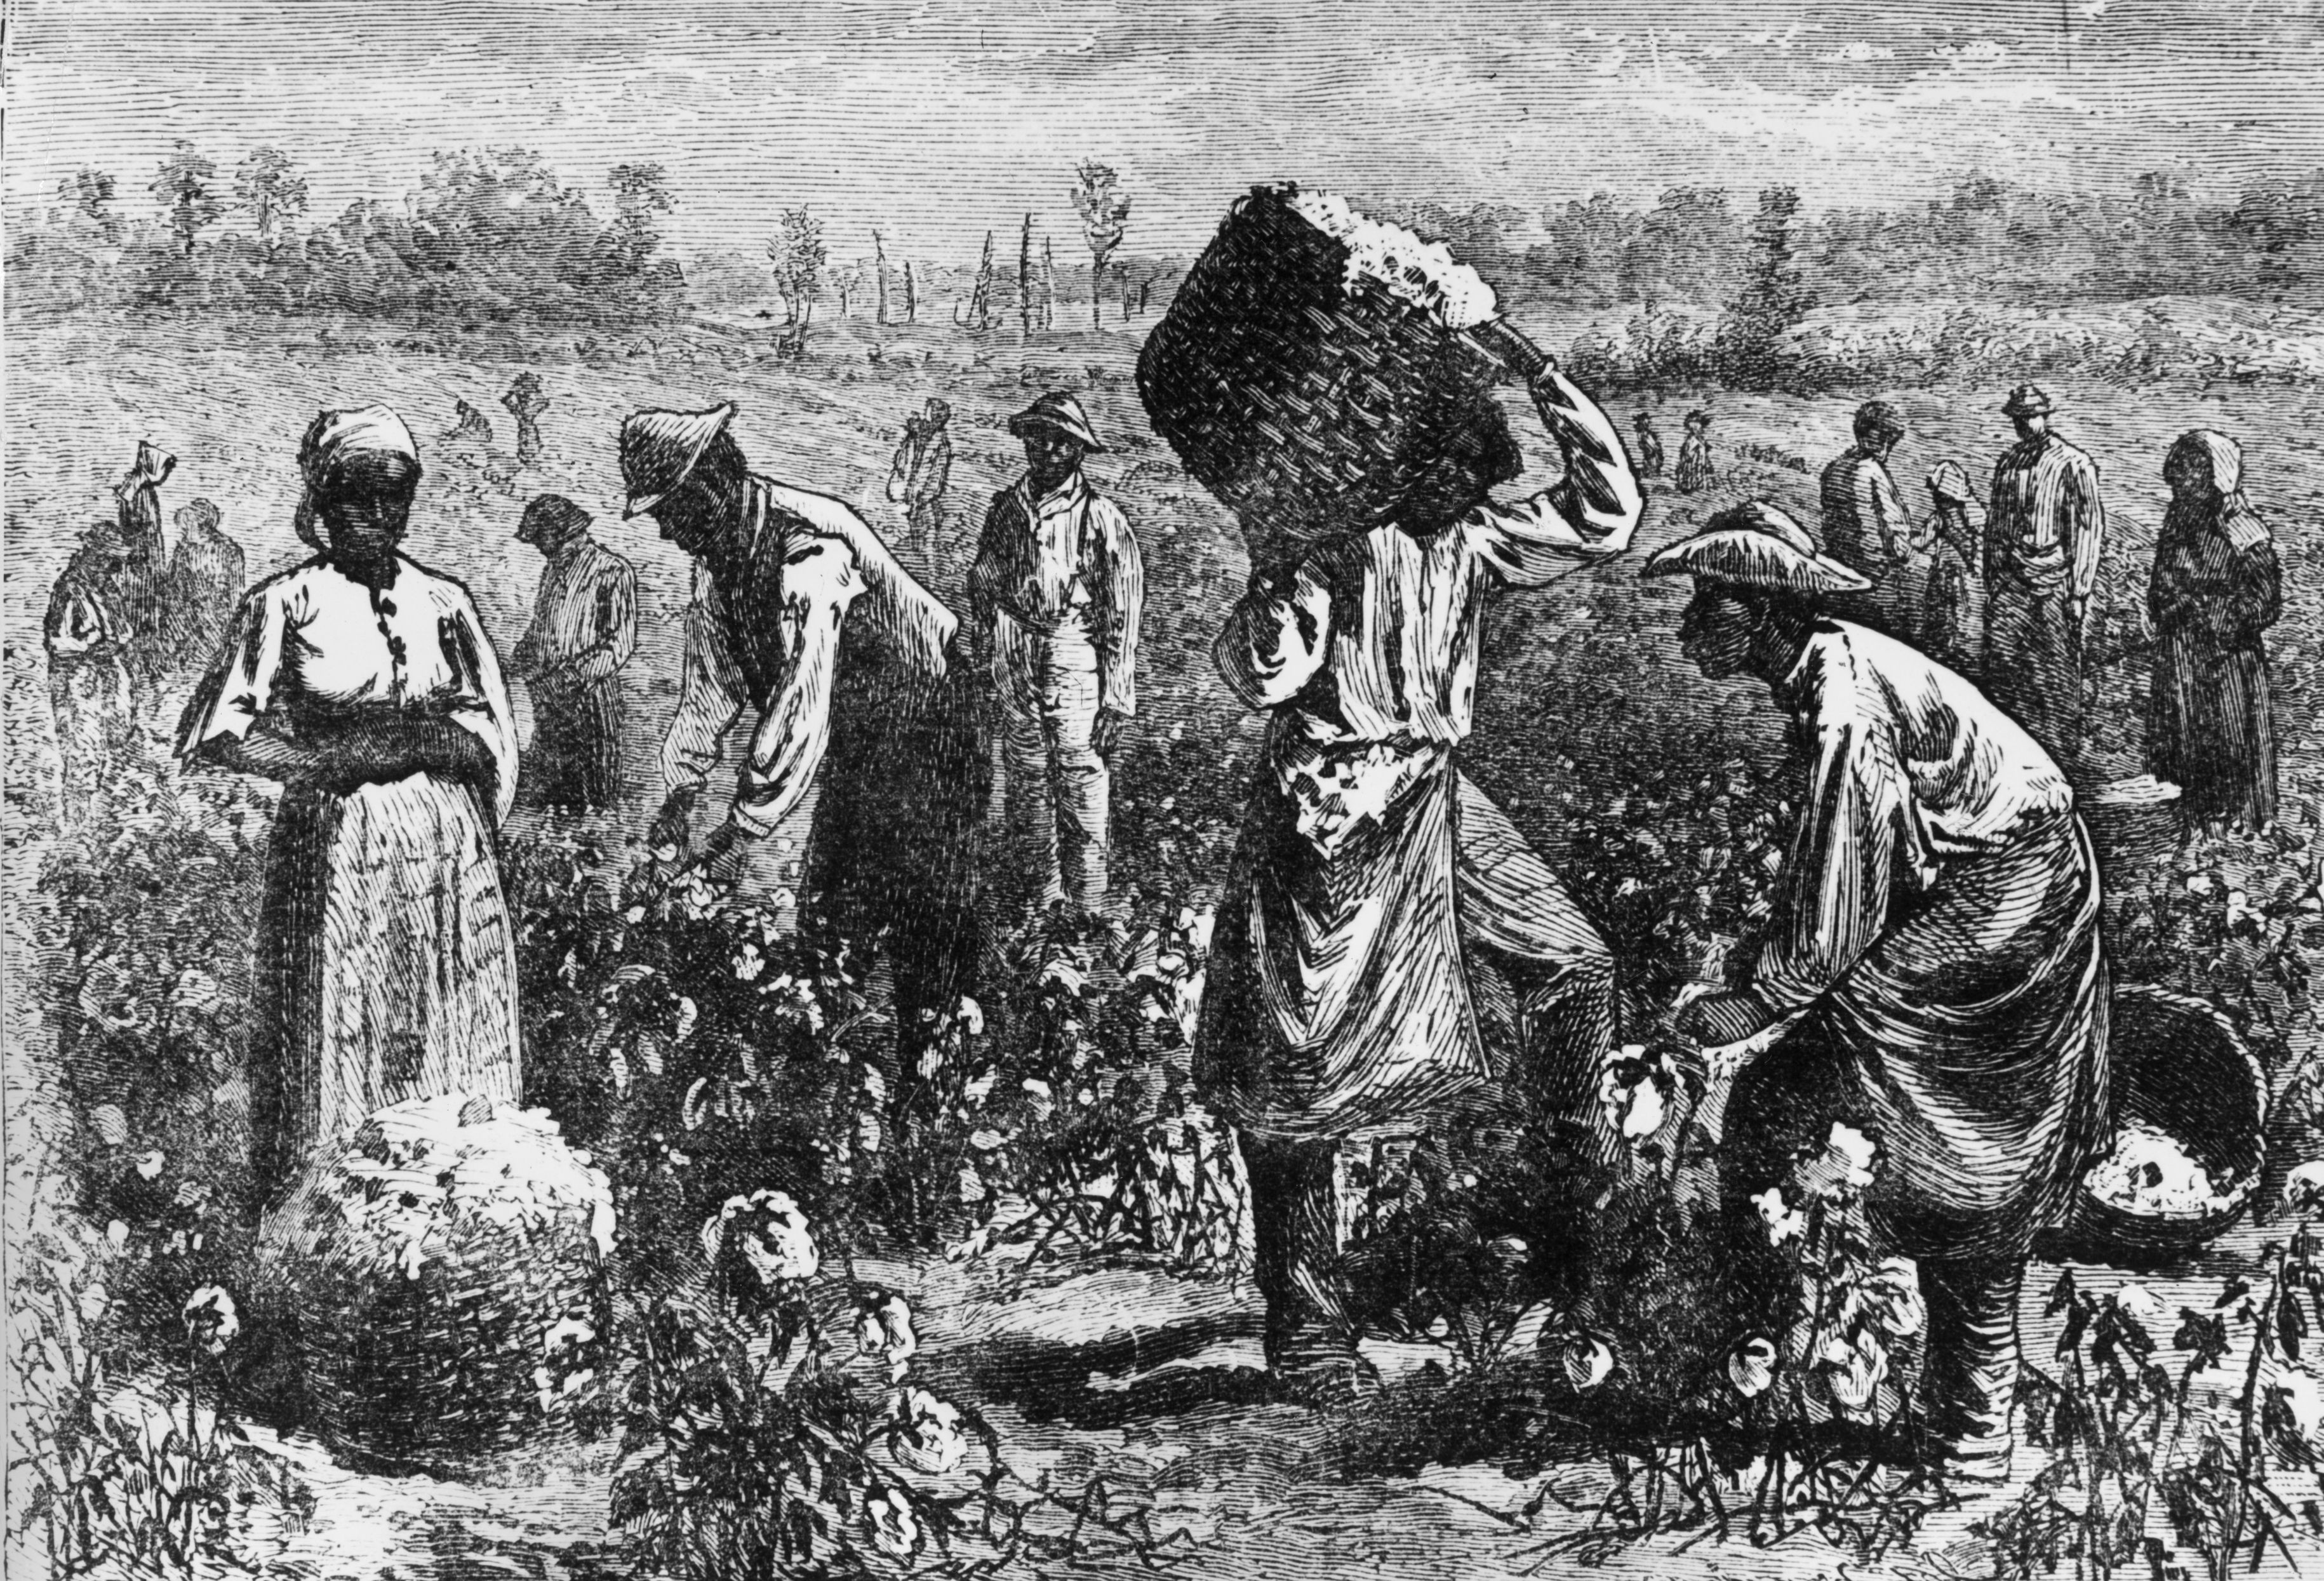 An illustration of slaves picking cotton on a plantation. (Photo by Hulton Archive/Getty Images)